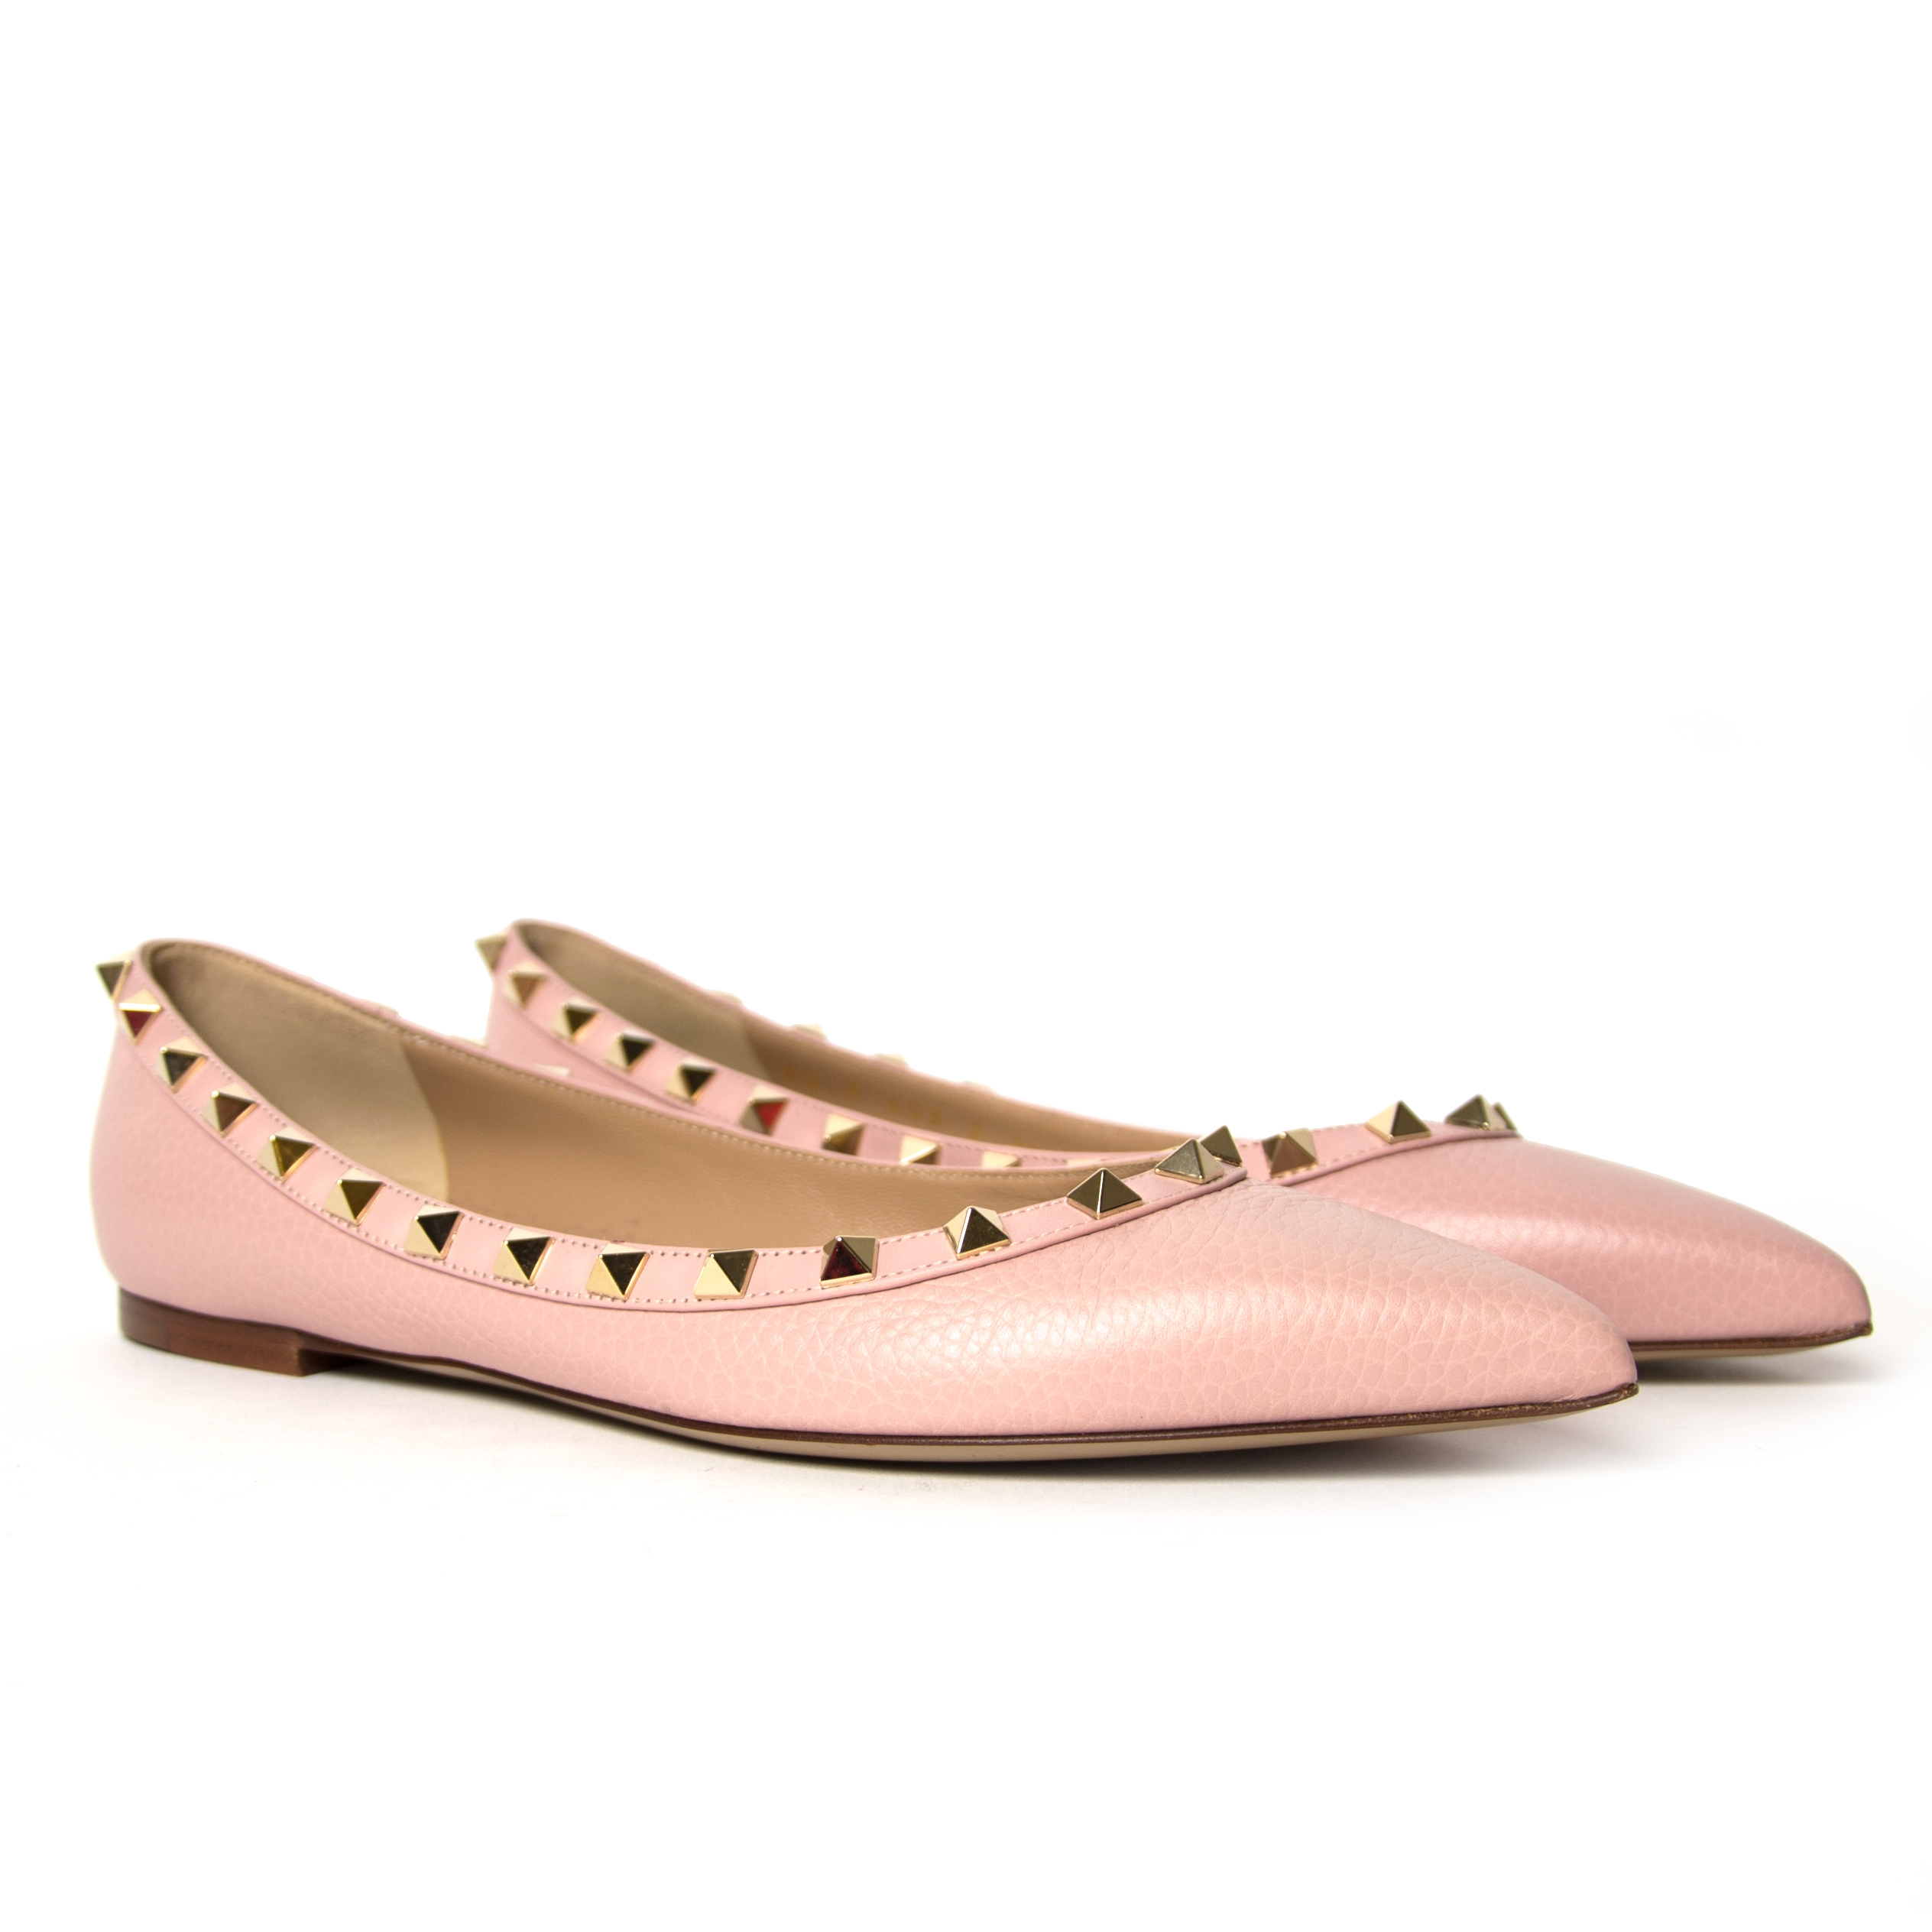 f0227af3a ... buy Valentino Baby Pink Rockstuds Flats - Size 38 at labellov and pay  save online